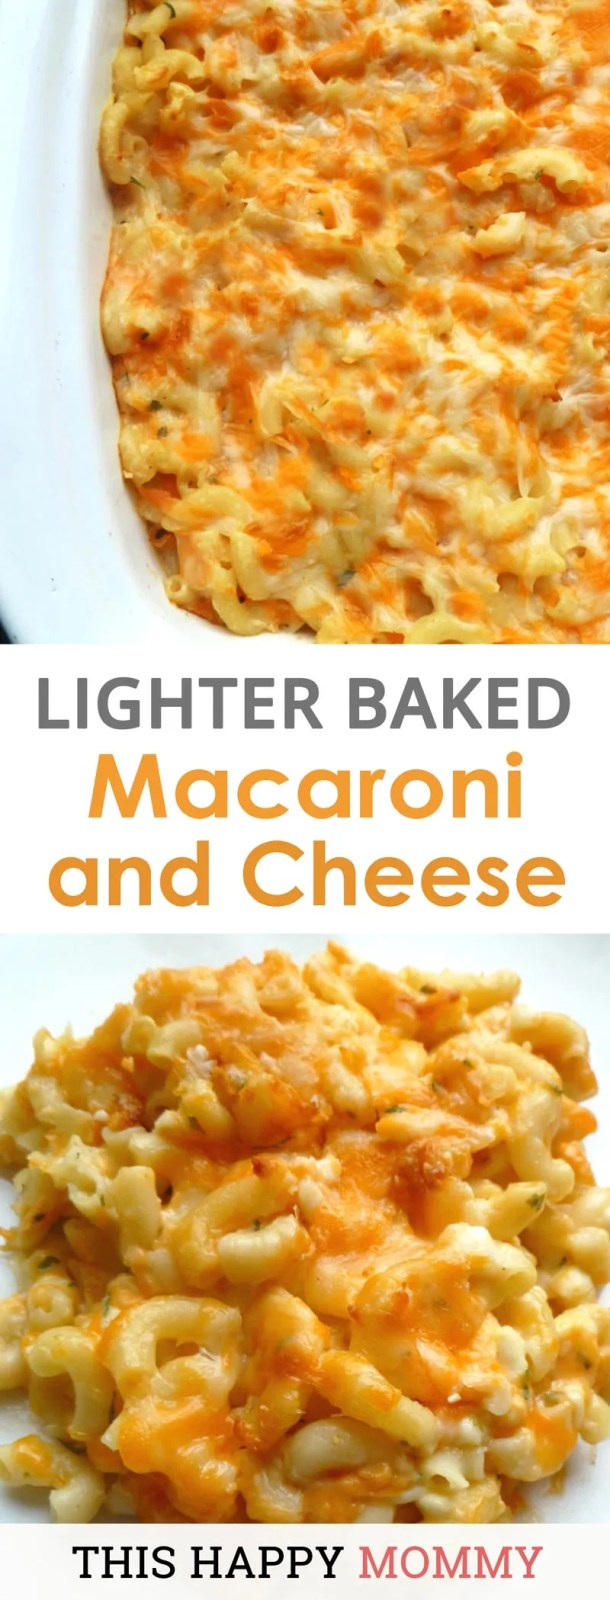 Creamy macaroni and cheese casserole, need I say more. Lighter Baked Macaroni and Cheese hits the sweet spot between comfort food and healthier cheesy pasta. | #pasta #recipe #meatlessmonday | thishappymommy.com